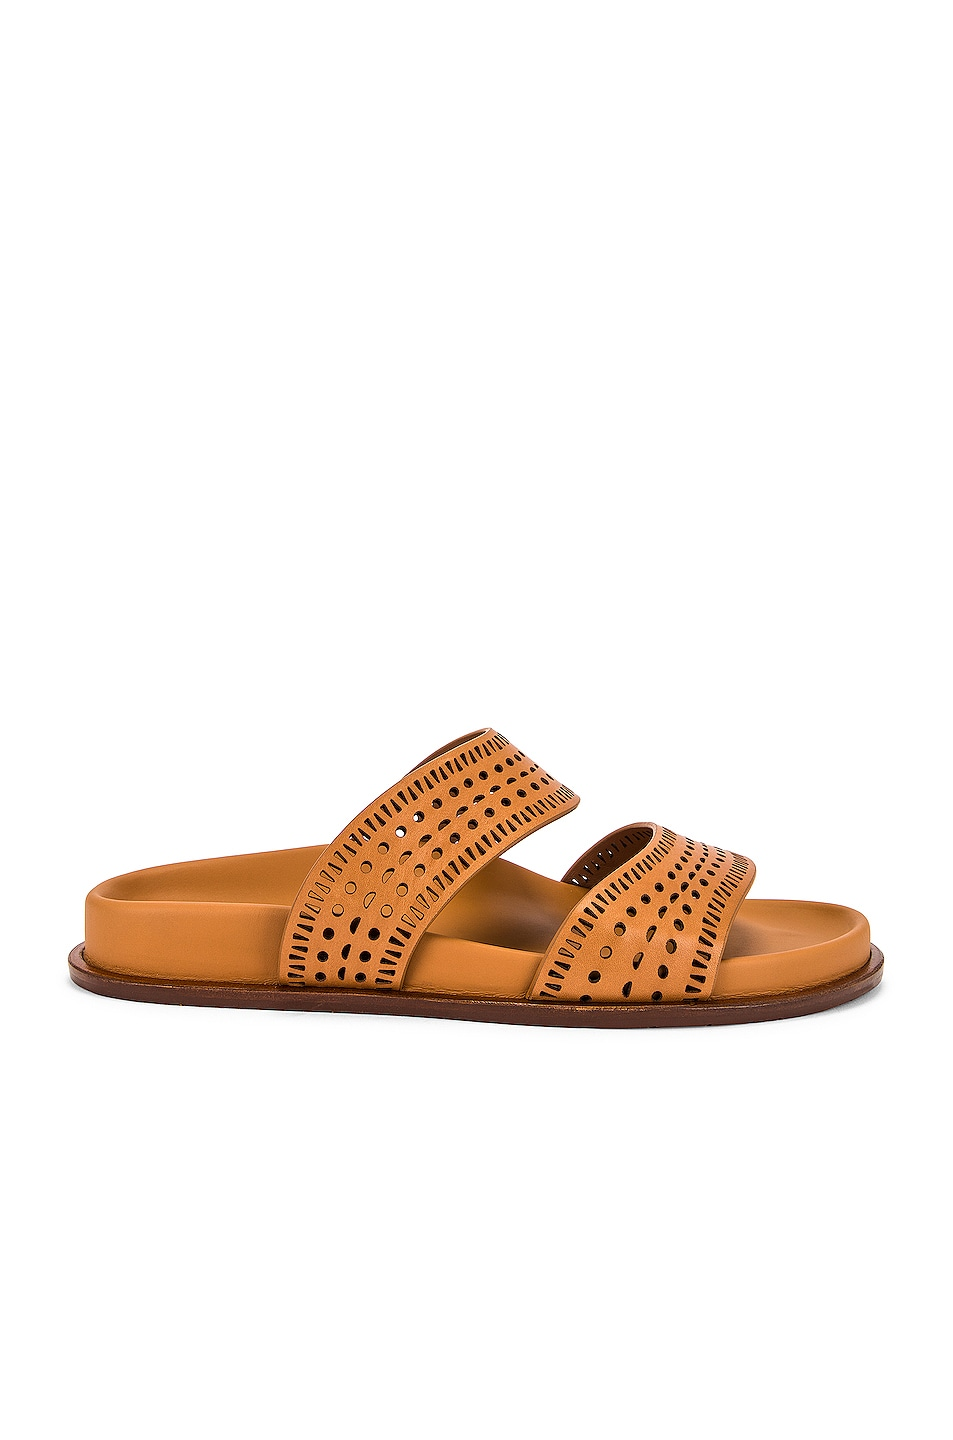 Image 1 of ALAÏA Vienne Leather Slides in Tan Clair